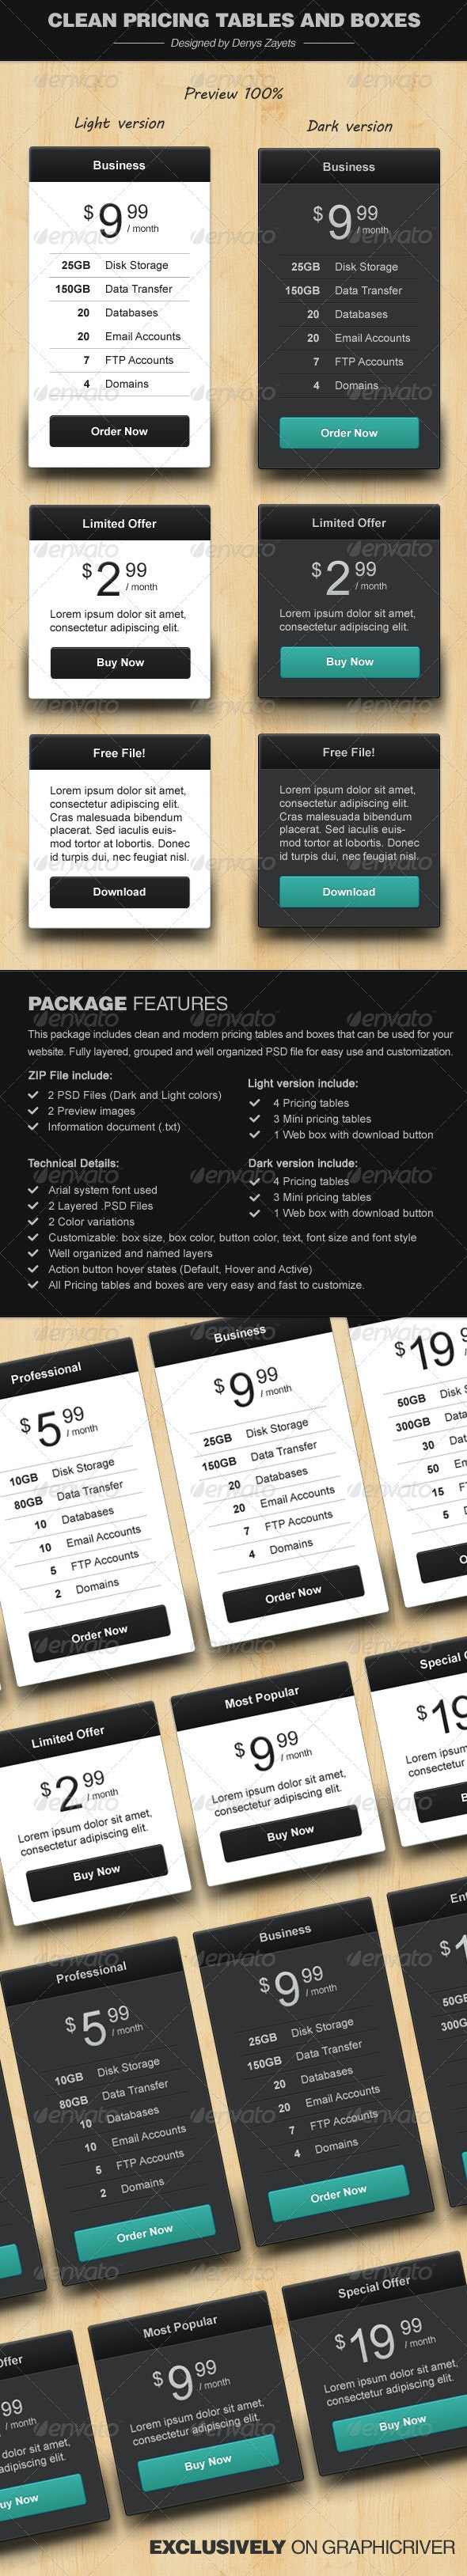 Clean Pricing Tables and Boxes